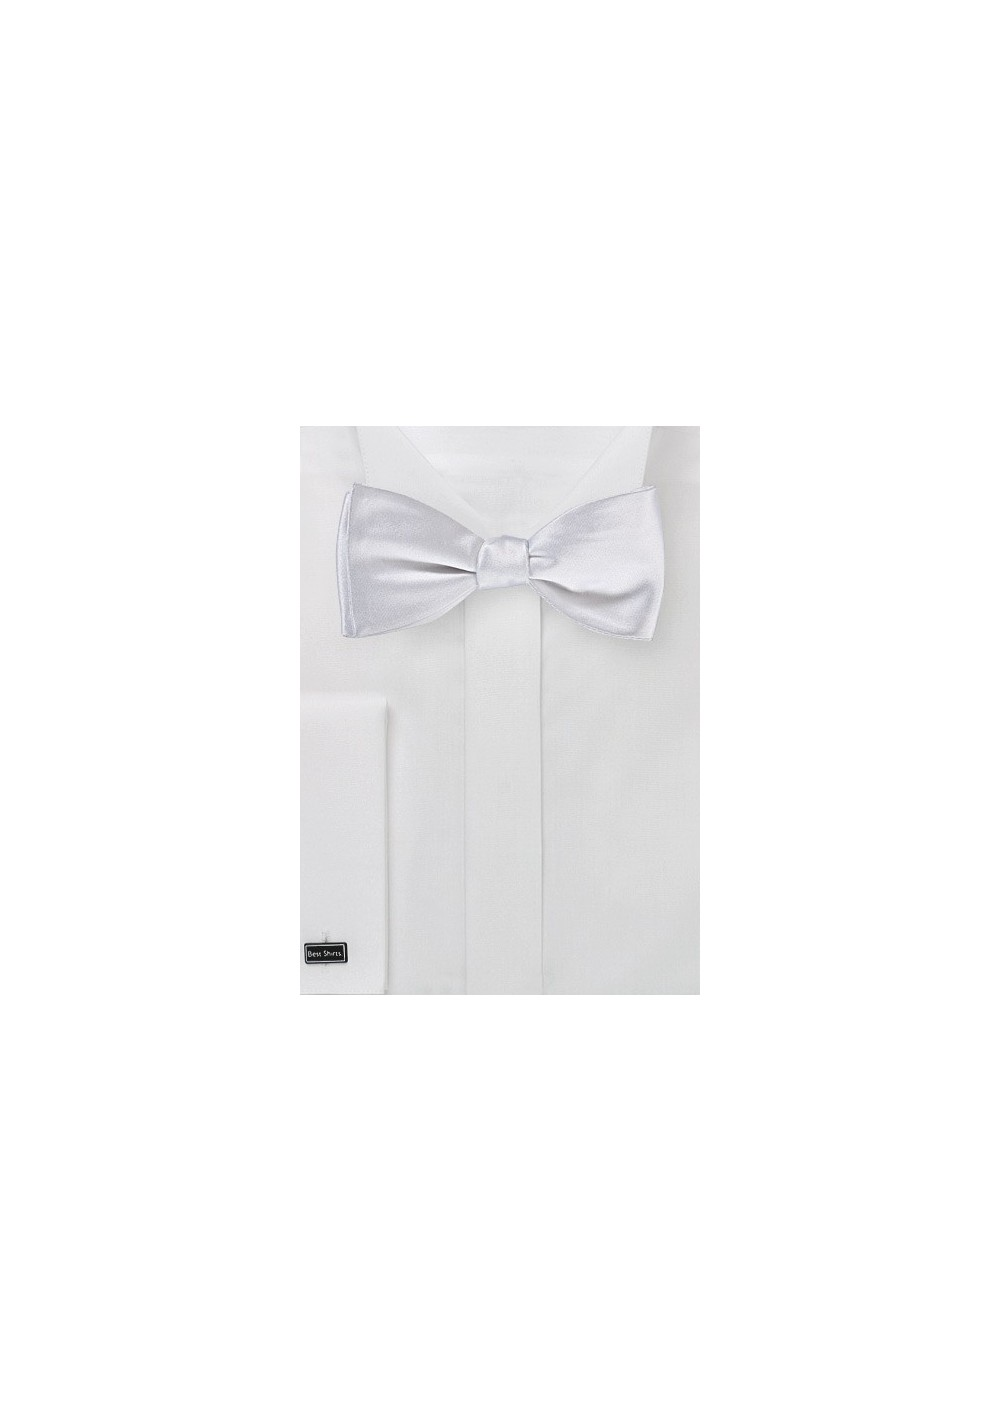 Bright White Self Tie Bow Tie